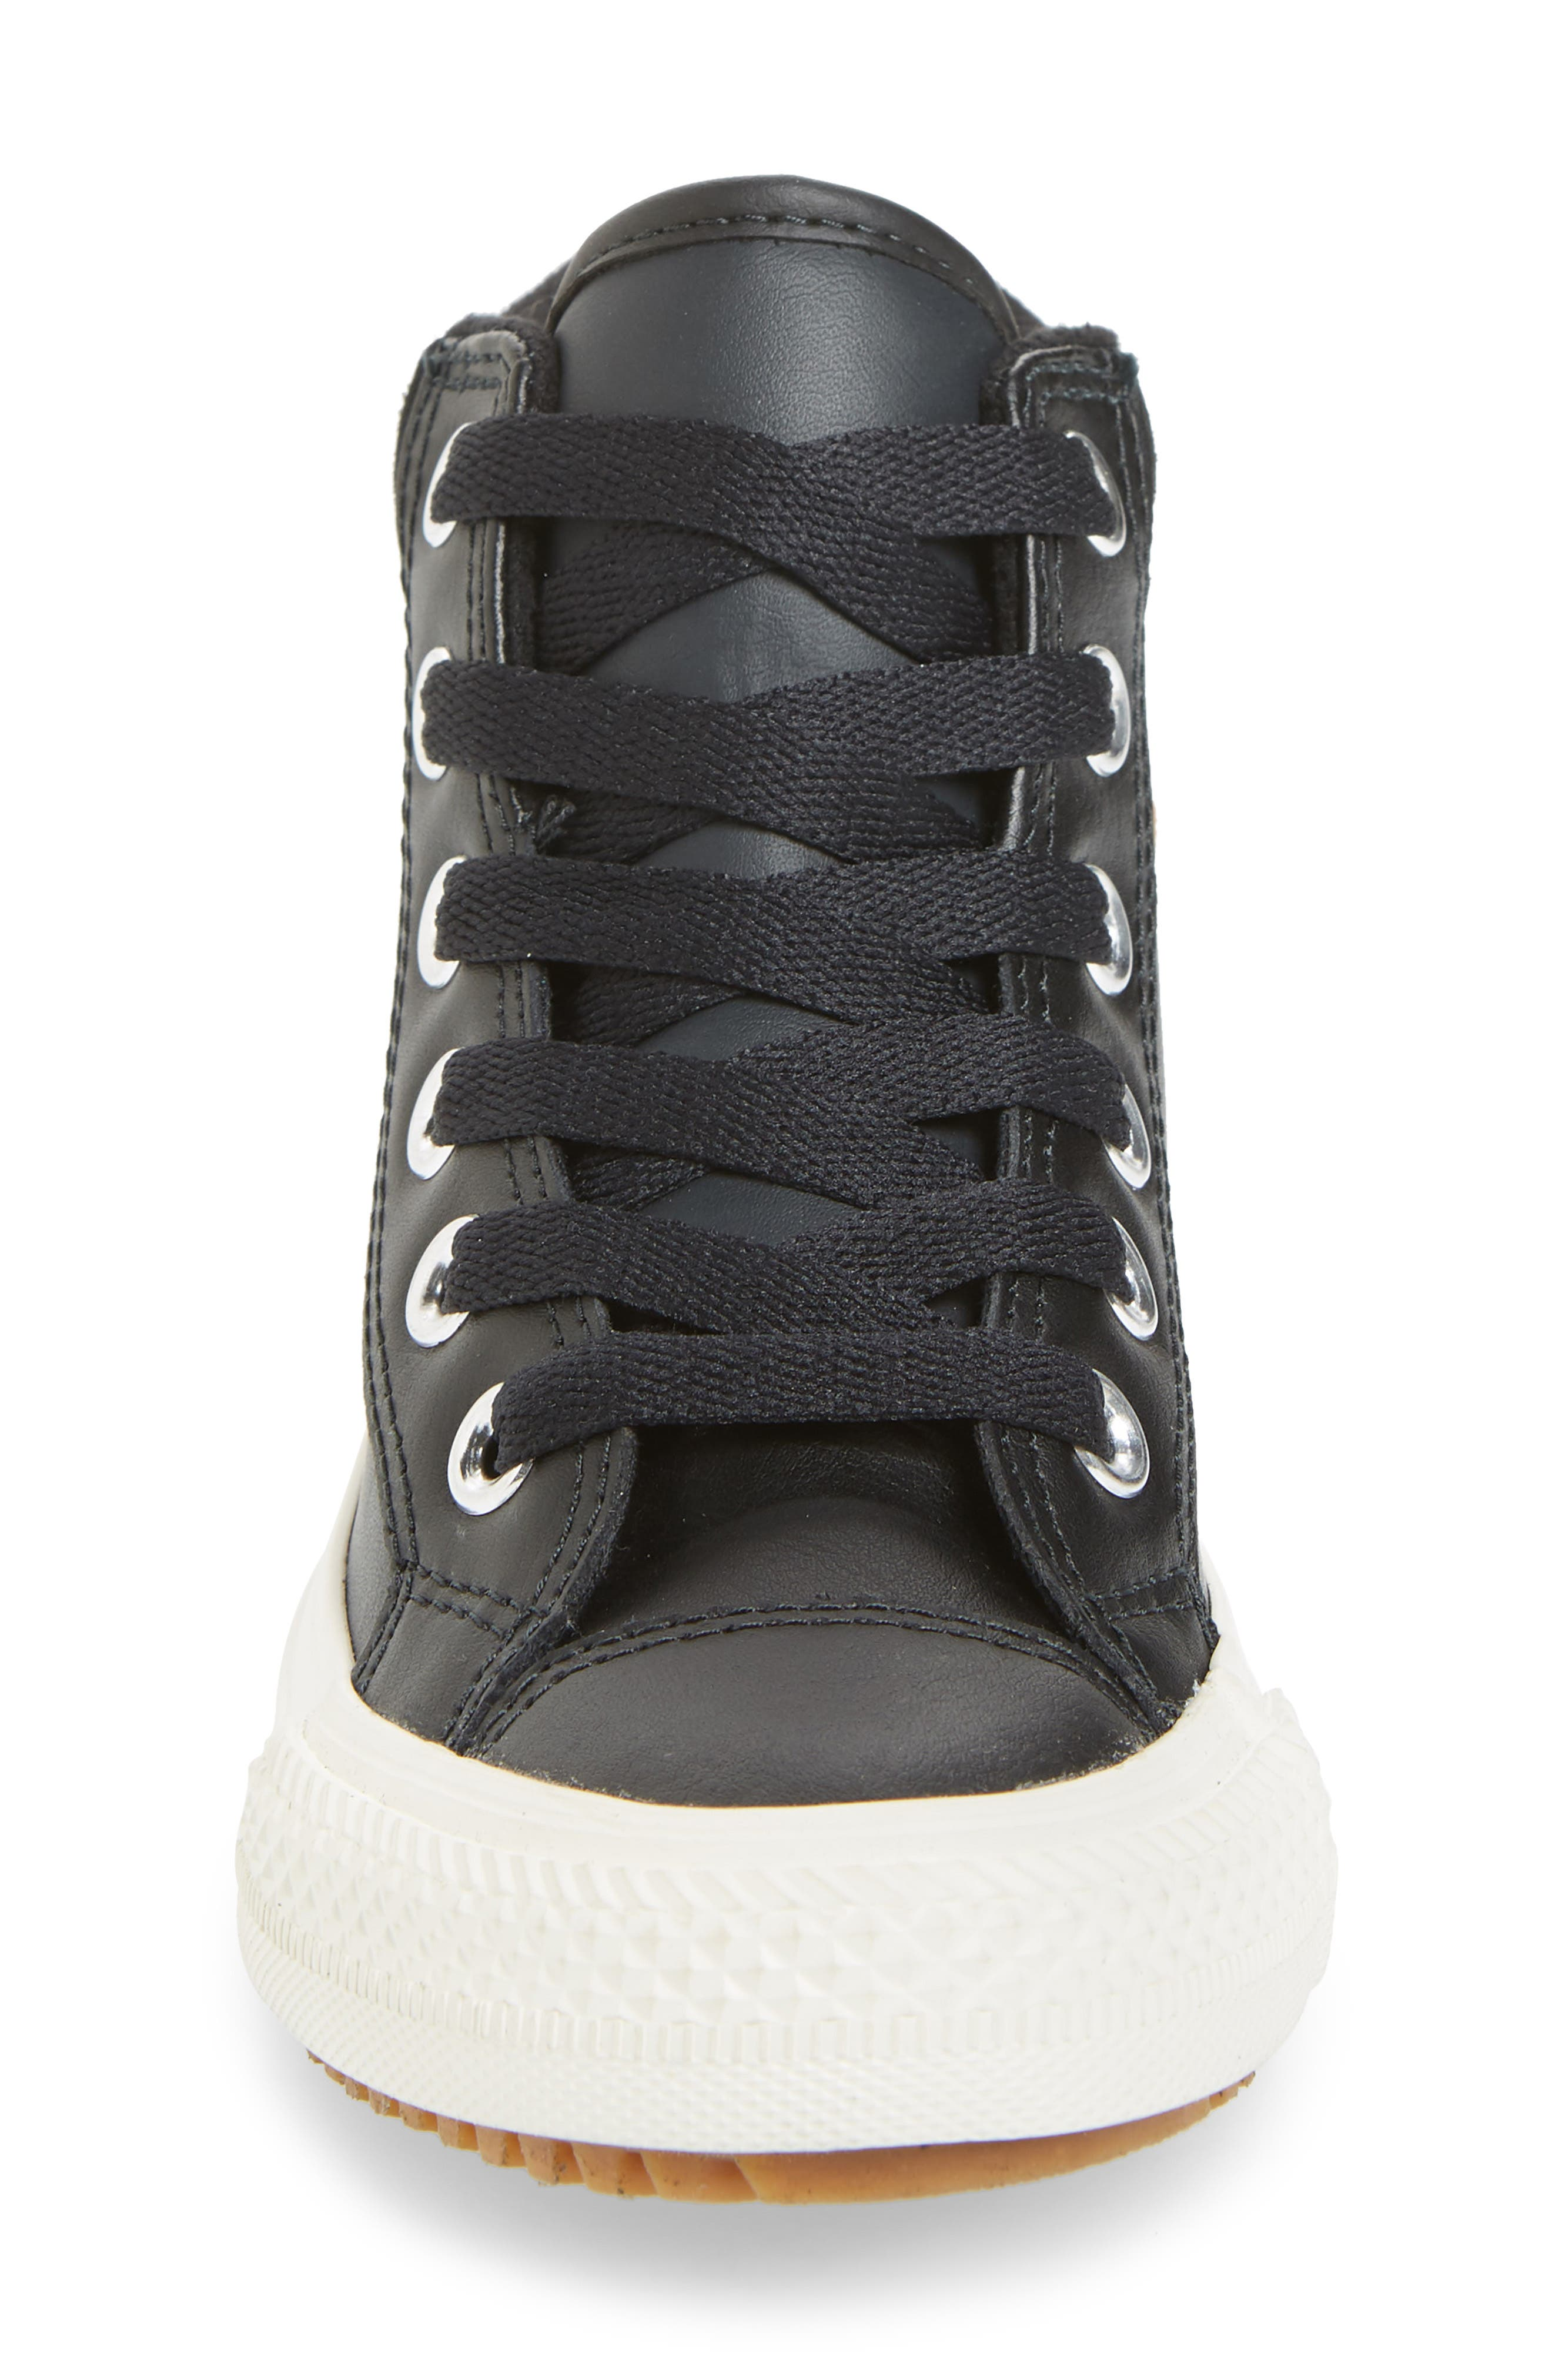 CONVERSE,                             Chuck Taylor<sup>®</sup> All Star<sup>®</sup> PC High Top Sneaker,                             Alternate thumbnail 4, color,                             BLACK